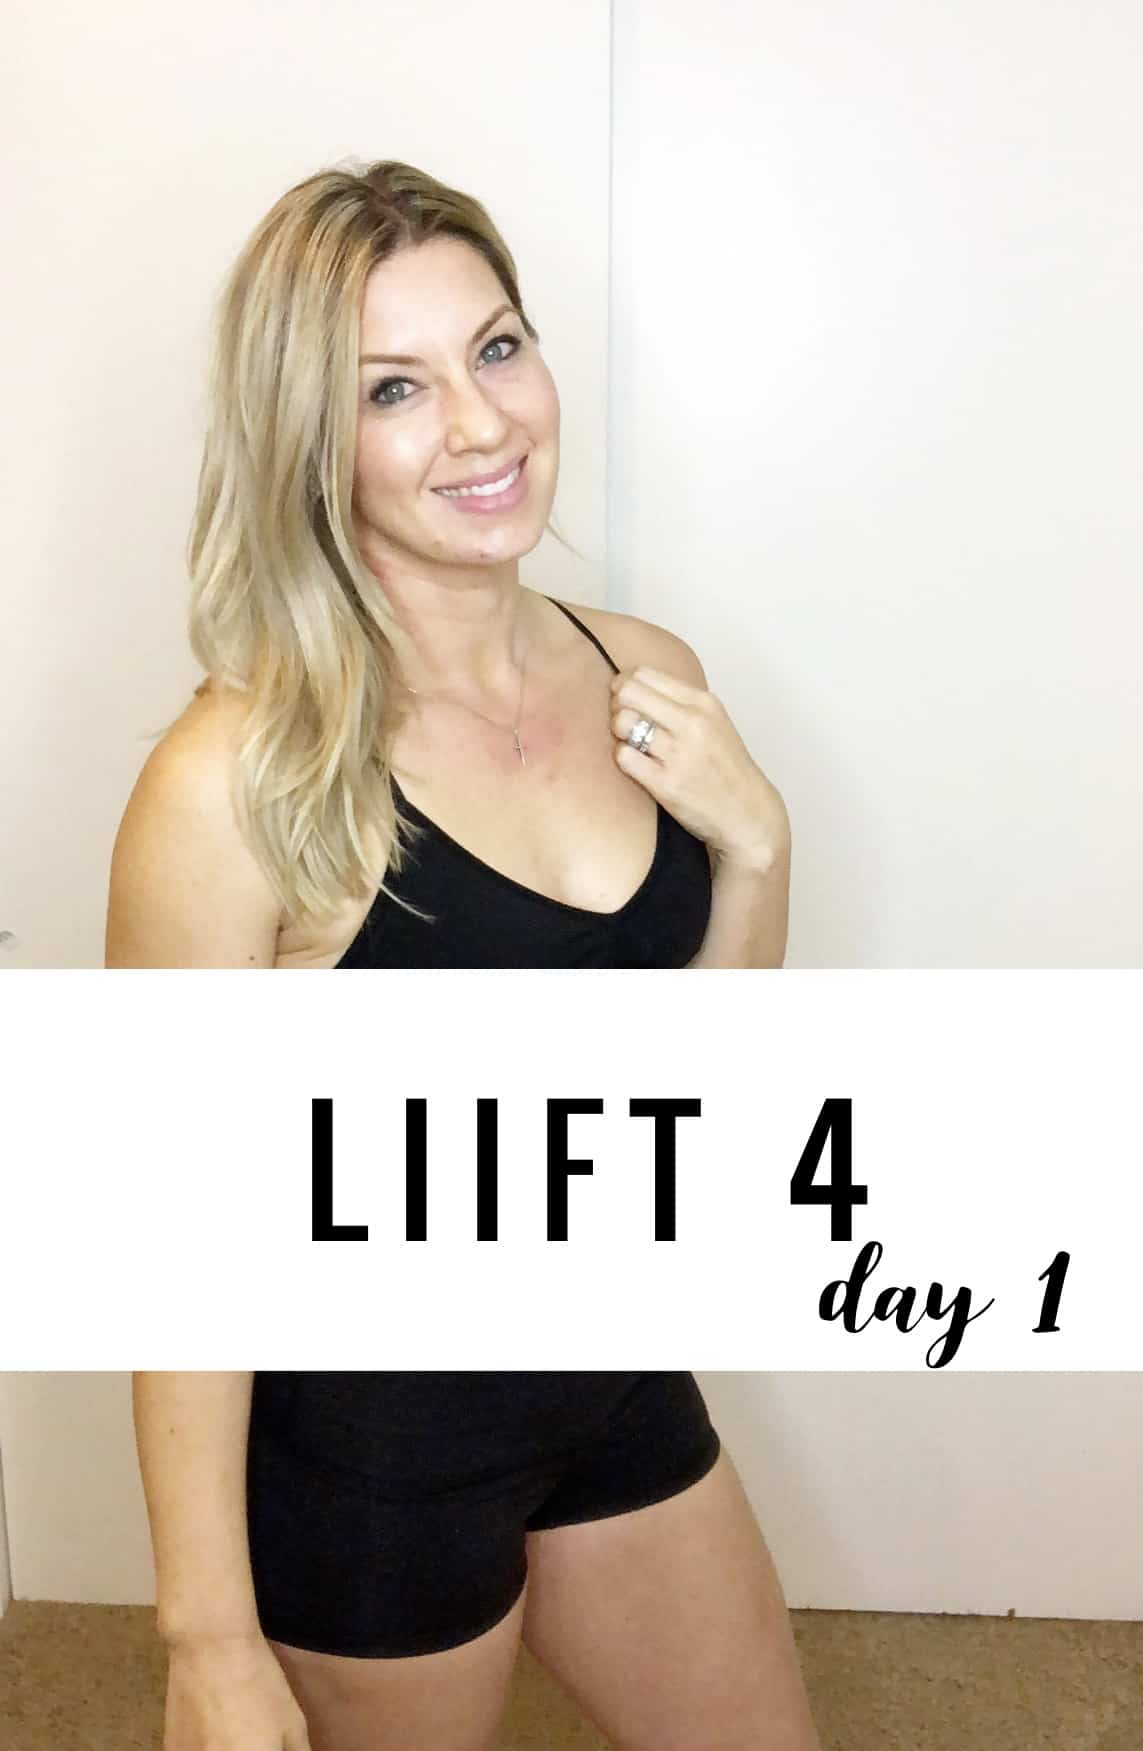 liift 4, lift 4, lift 4 review, liift 4 review, lift 4 beachbody, liift 4 beachbody, lift 4 transformation, lift 4 mom, liift 4 mom